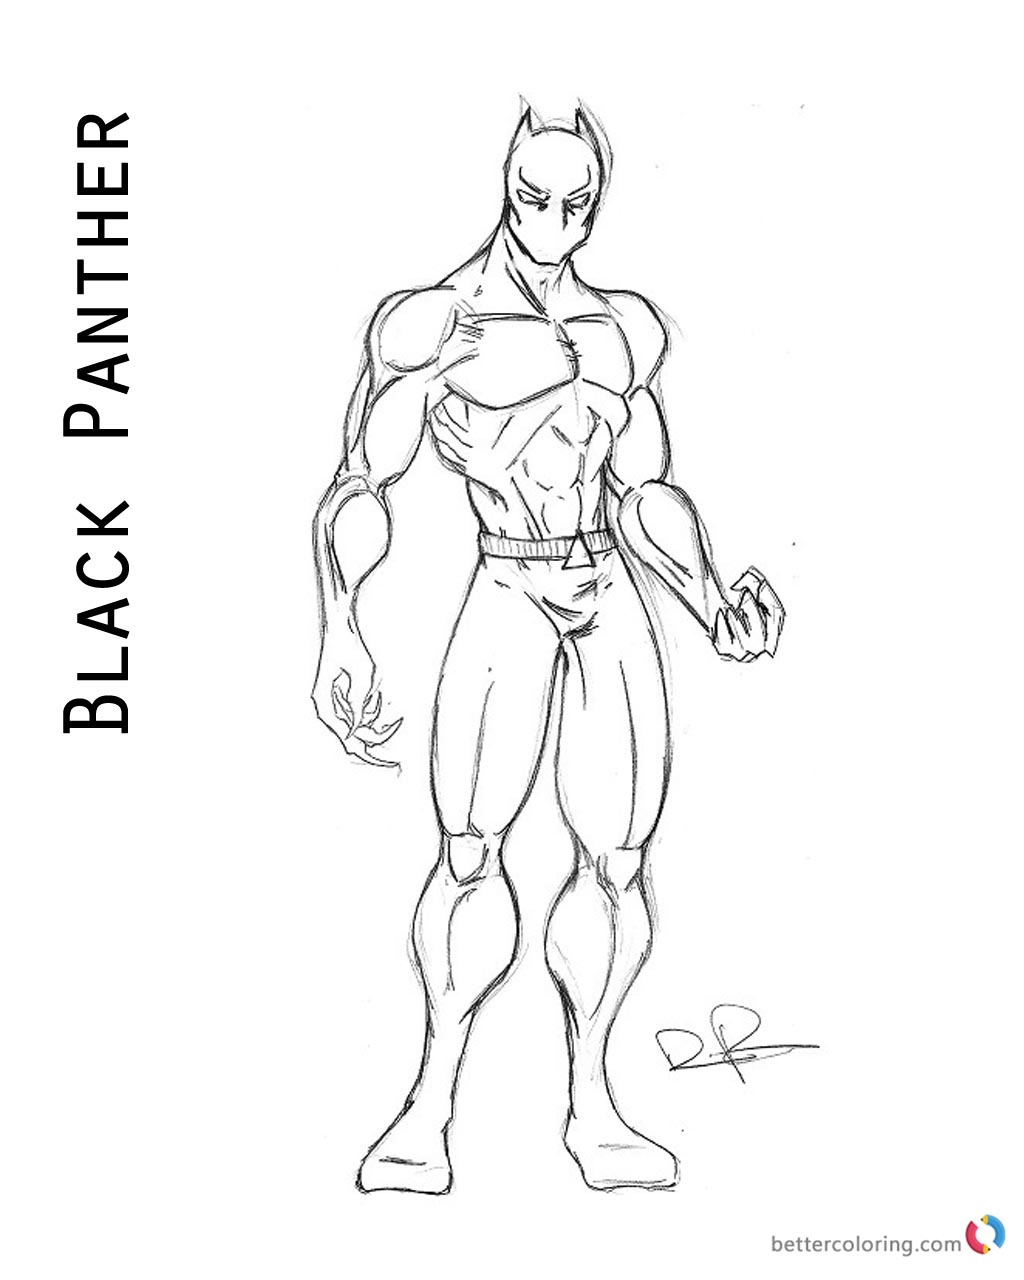 Superhero Thanos Coloring Pages: Superhero Black Panther Coloring Page